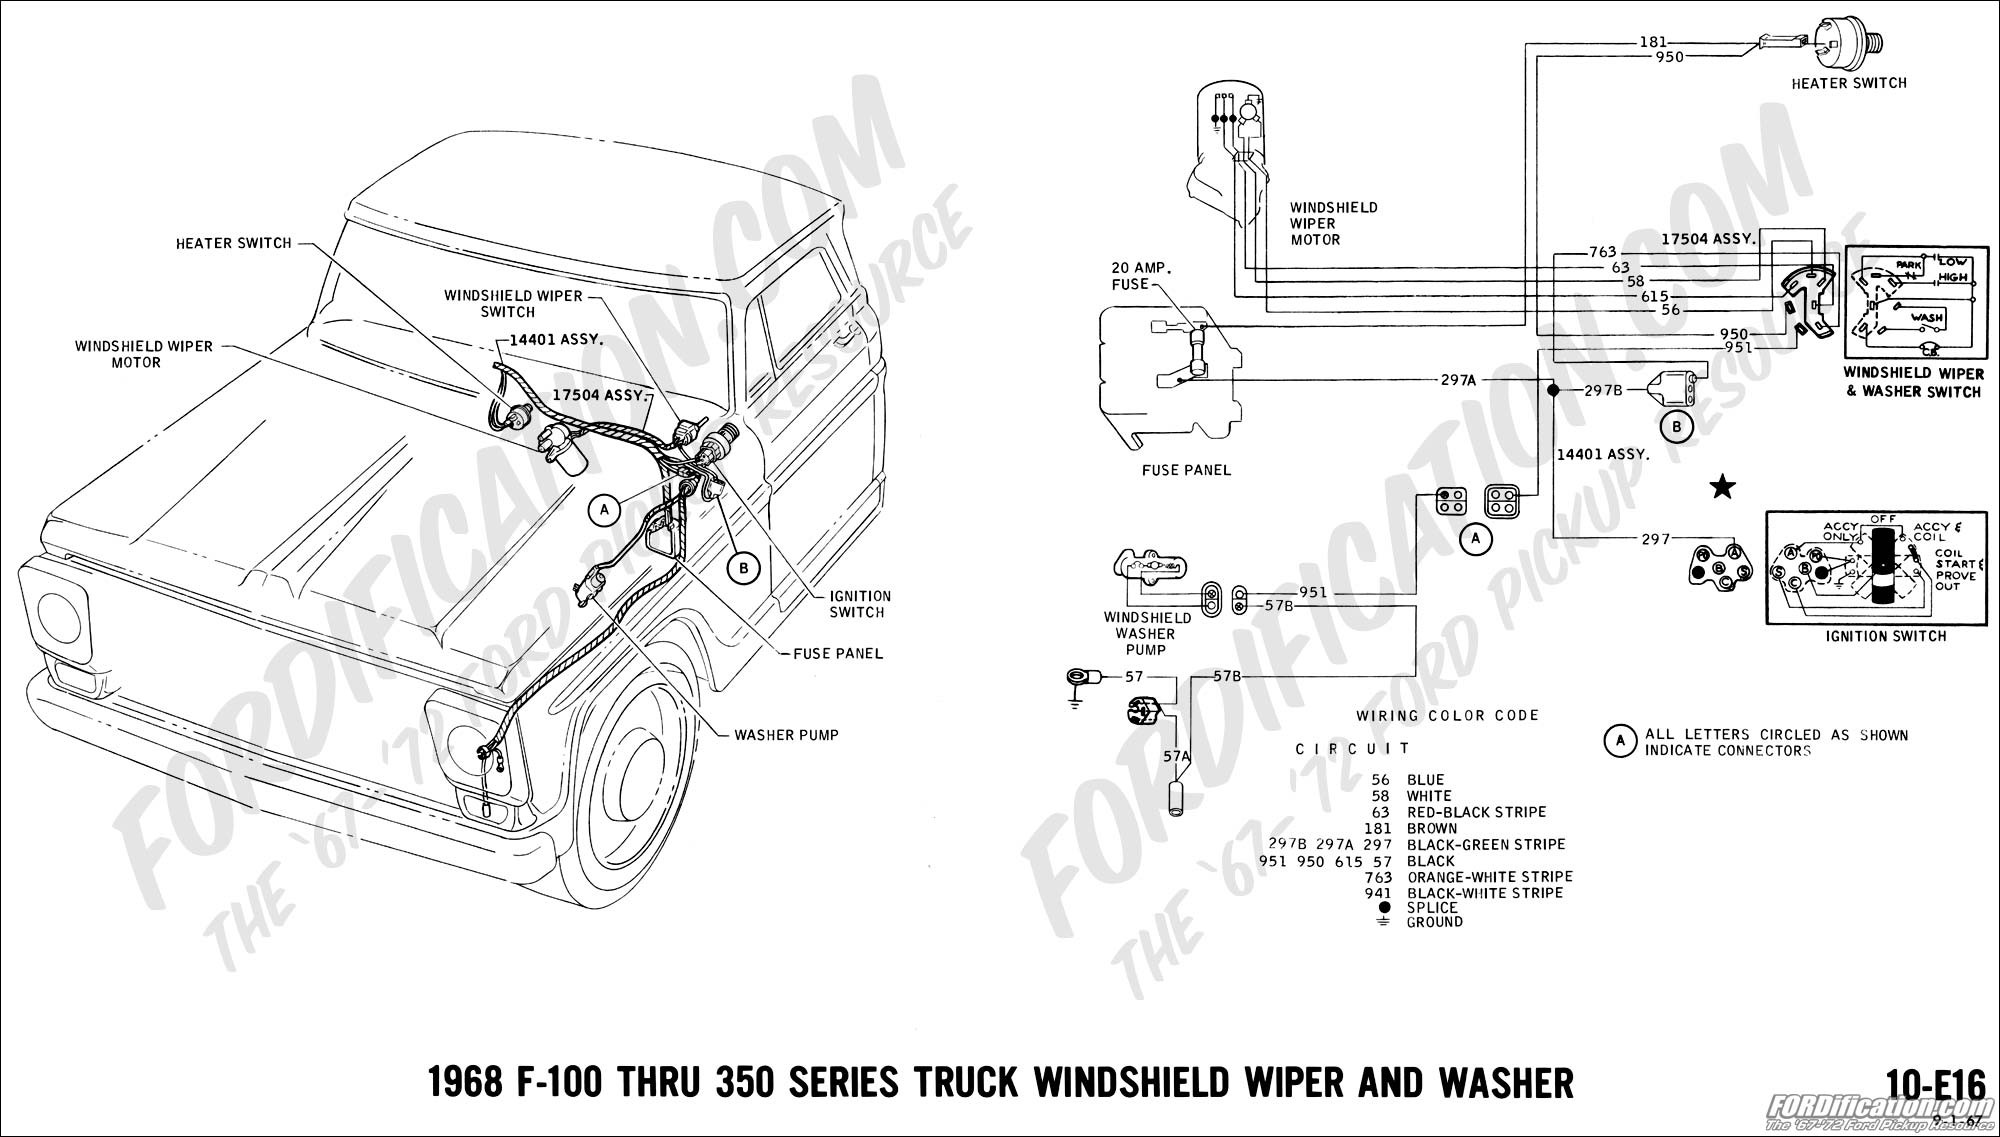 2003 ford Ranger Engine Diagram ford Truck Technical Drawings and Schematics Section H Wiring Of 2003 ford Ranger Engine Diagram